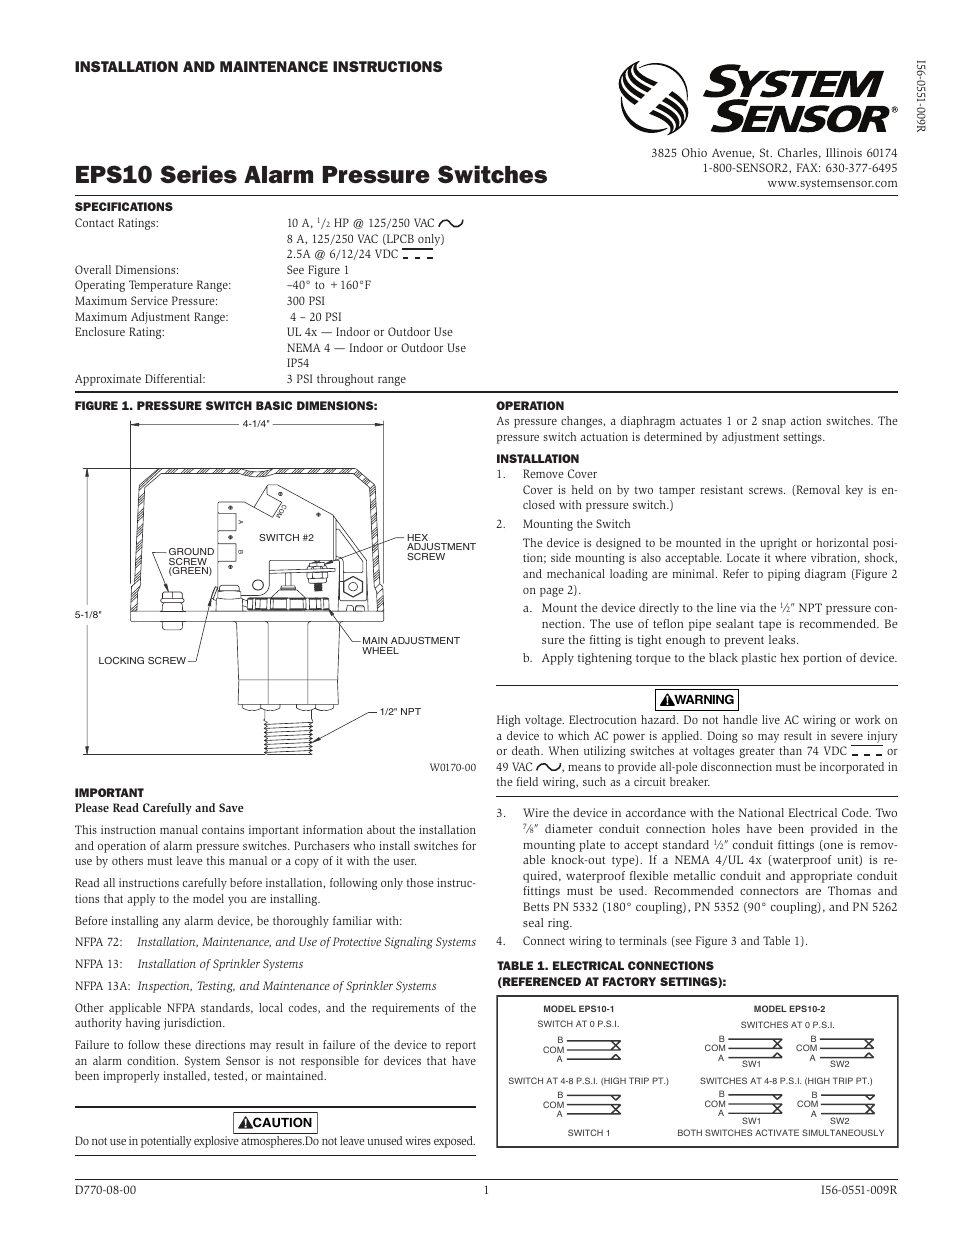 system sensor eps10 1 and eps10 2 page1 system sensor eps10 1 and eps10 2 user manual 2 pages 5R55E Transmission Wiring Diagram at bayanpartner.co